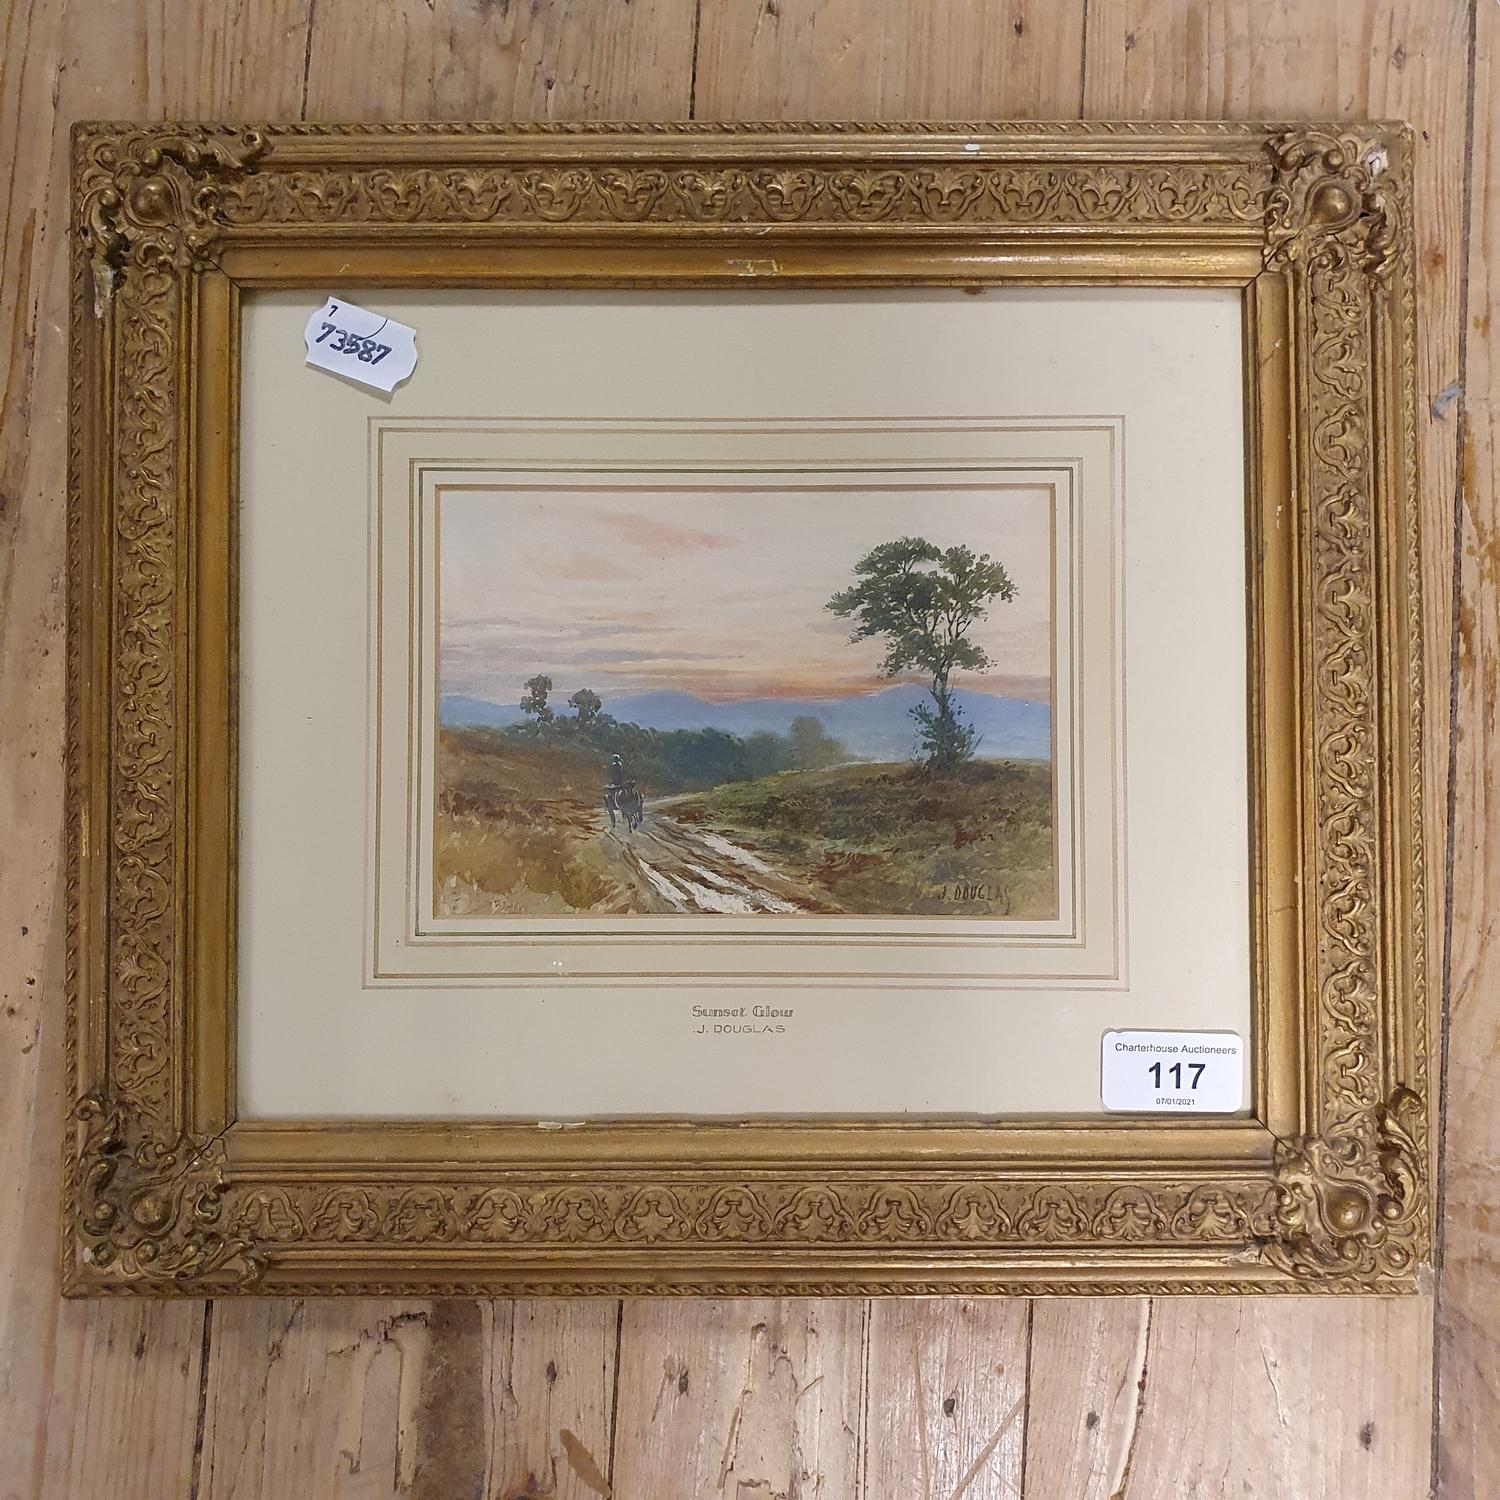 J Douglas, landscape with horse and cart, watercolour, signed, 13 x 18 cm - Image 2 of 3